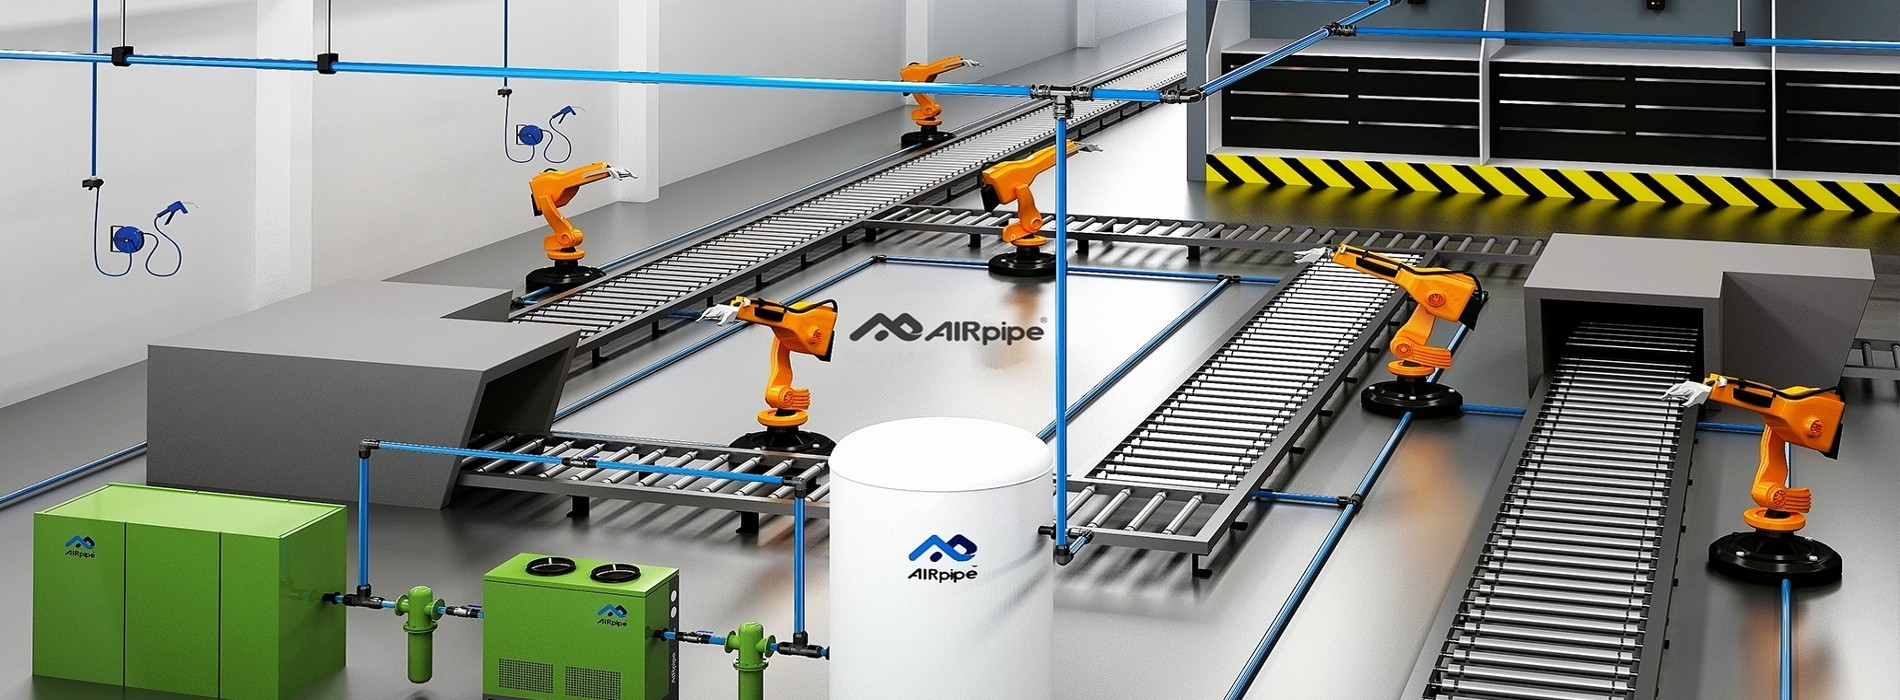 About AIRpipe & AIRpipe Europe - Aluminum pipes and piping systems